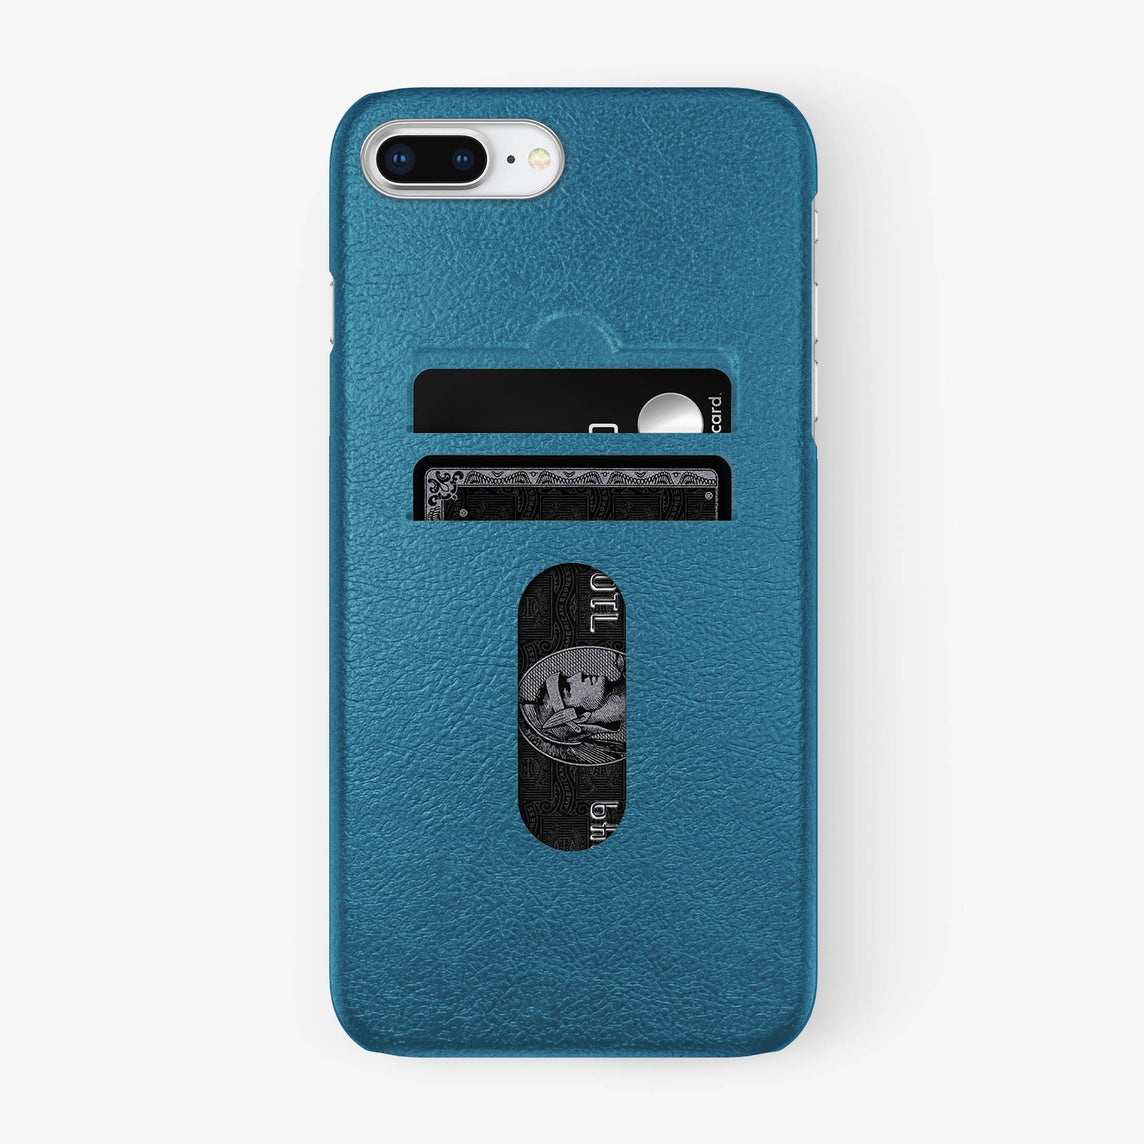 Calfskin Card Holder Case iPhone 7/8 Plus | Teal - Stainless Steel